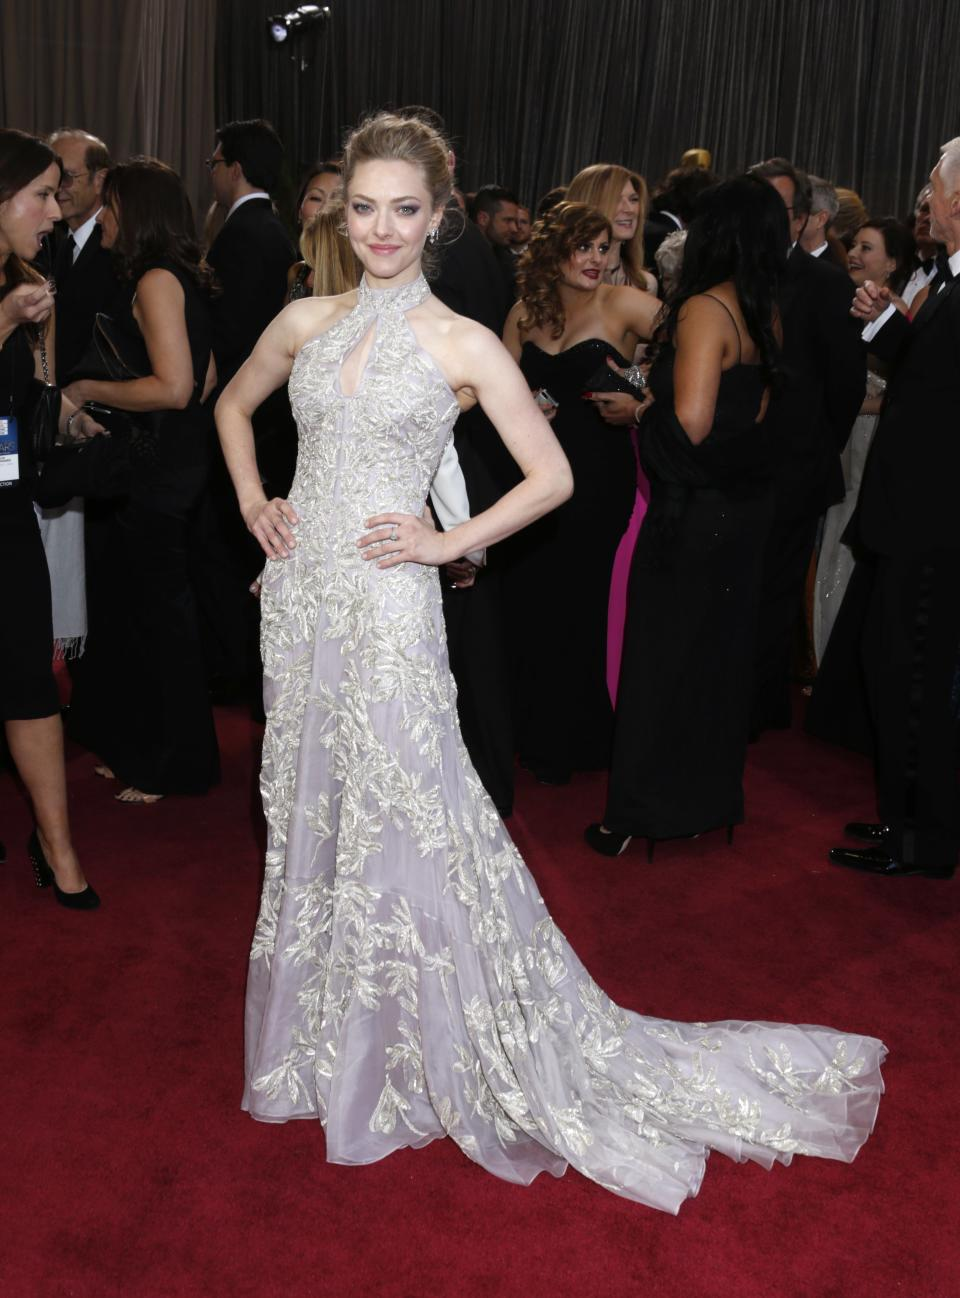 Actress Amanda Seyfried arrives at the Oscars at the Dolby Theatre on Sunday Feb. 24, 2013, in Los Angeles. (Photo by Todd Williamson/Invision/AP)